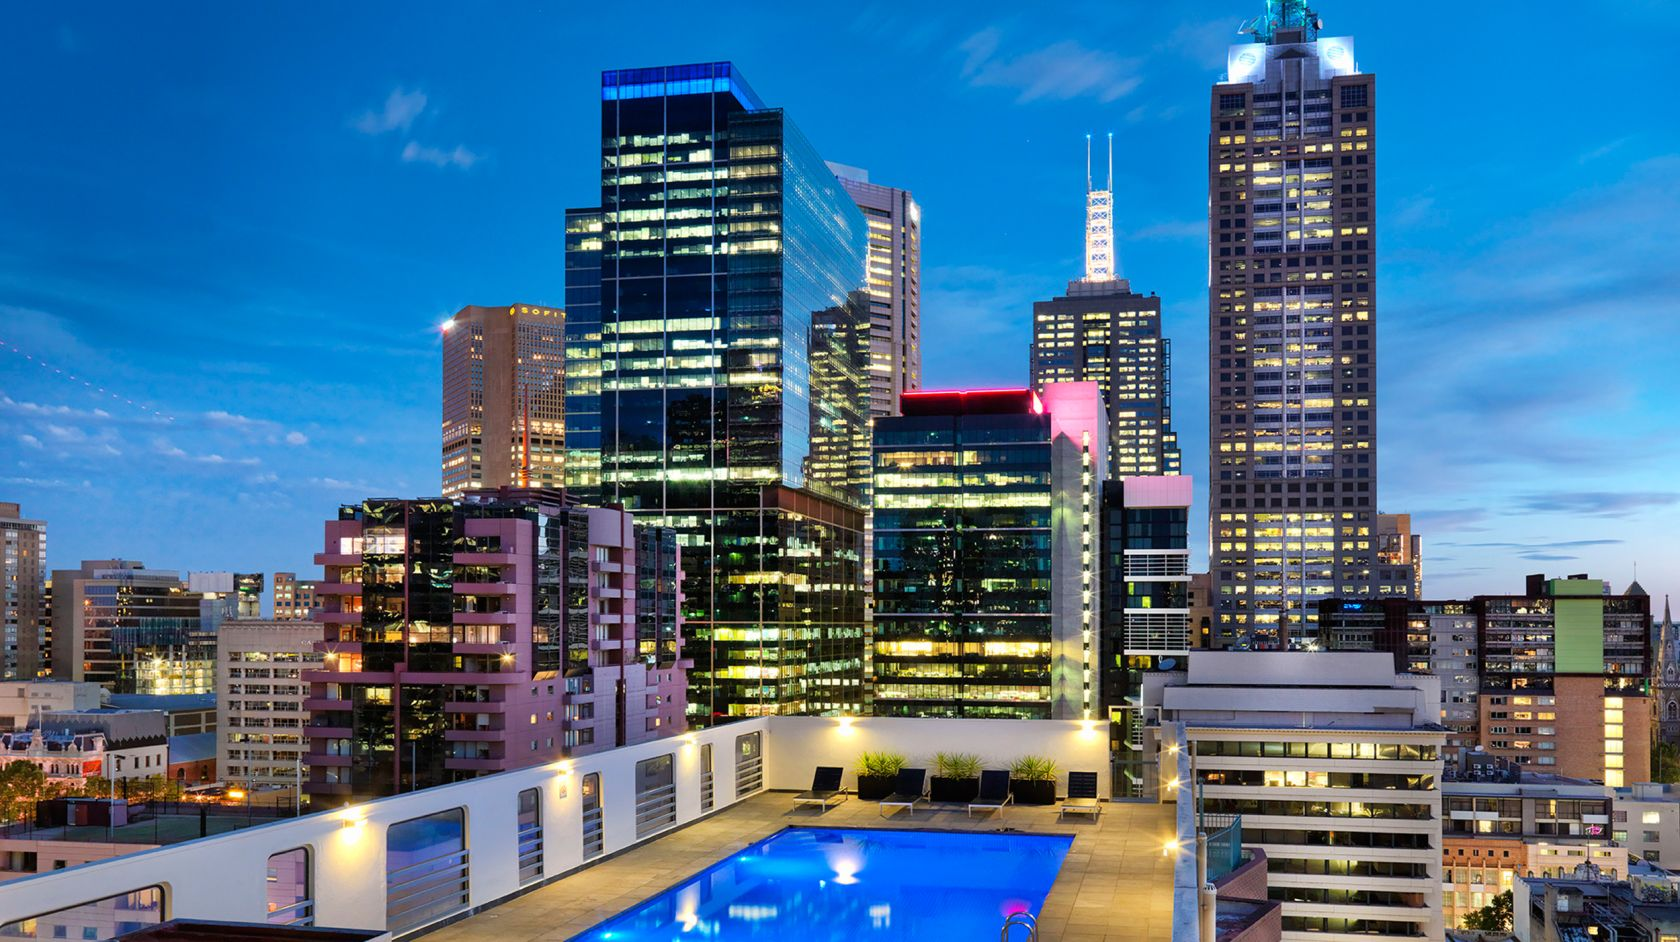 Fitness Room & Rooftop Pool | Grand Chancellor Melbourne